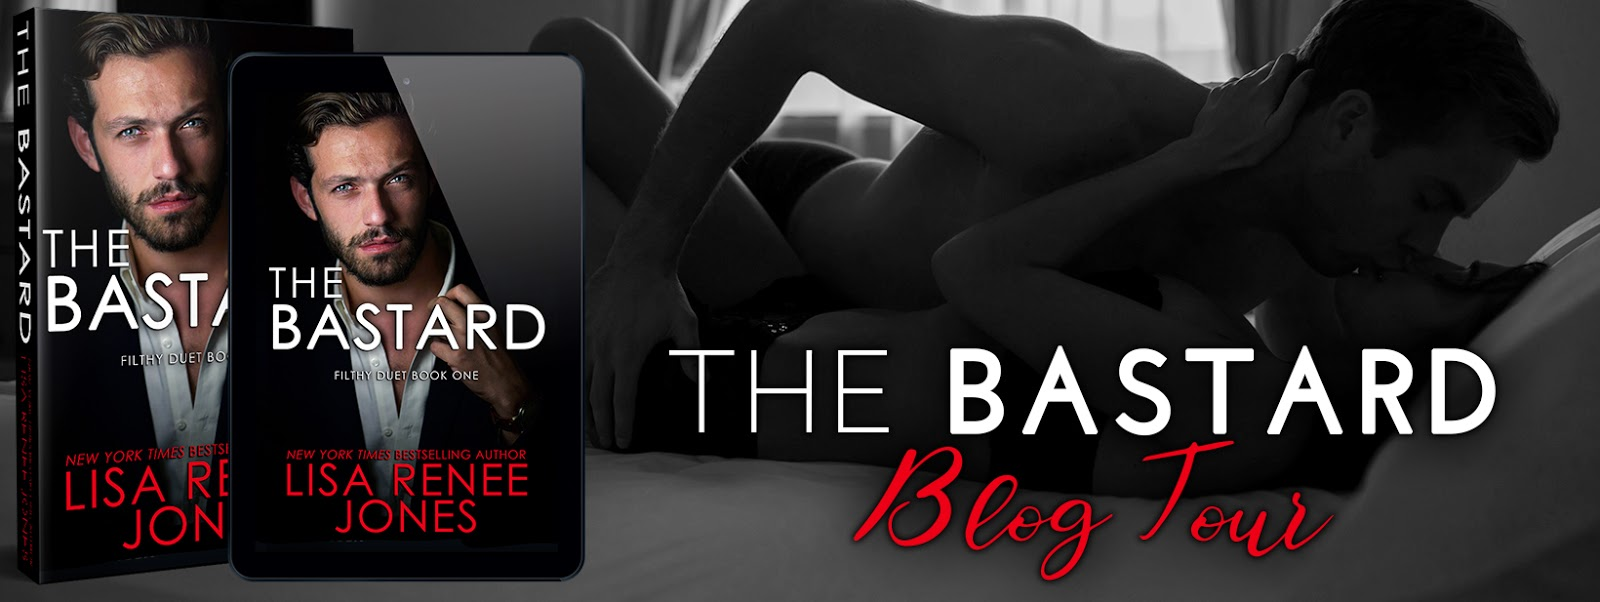 The Bastard by Lisa Renee Jones is Live!!